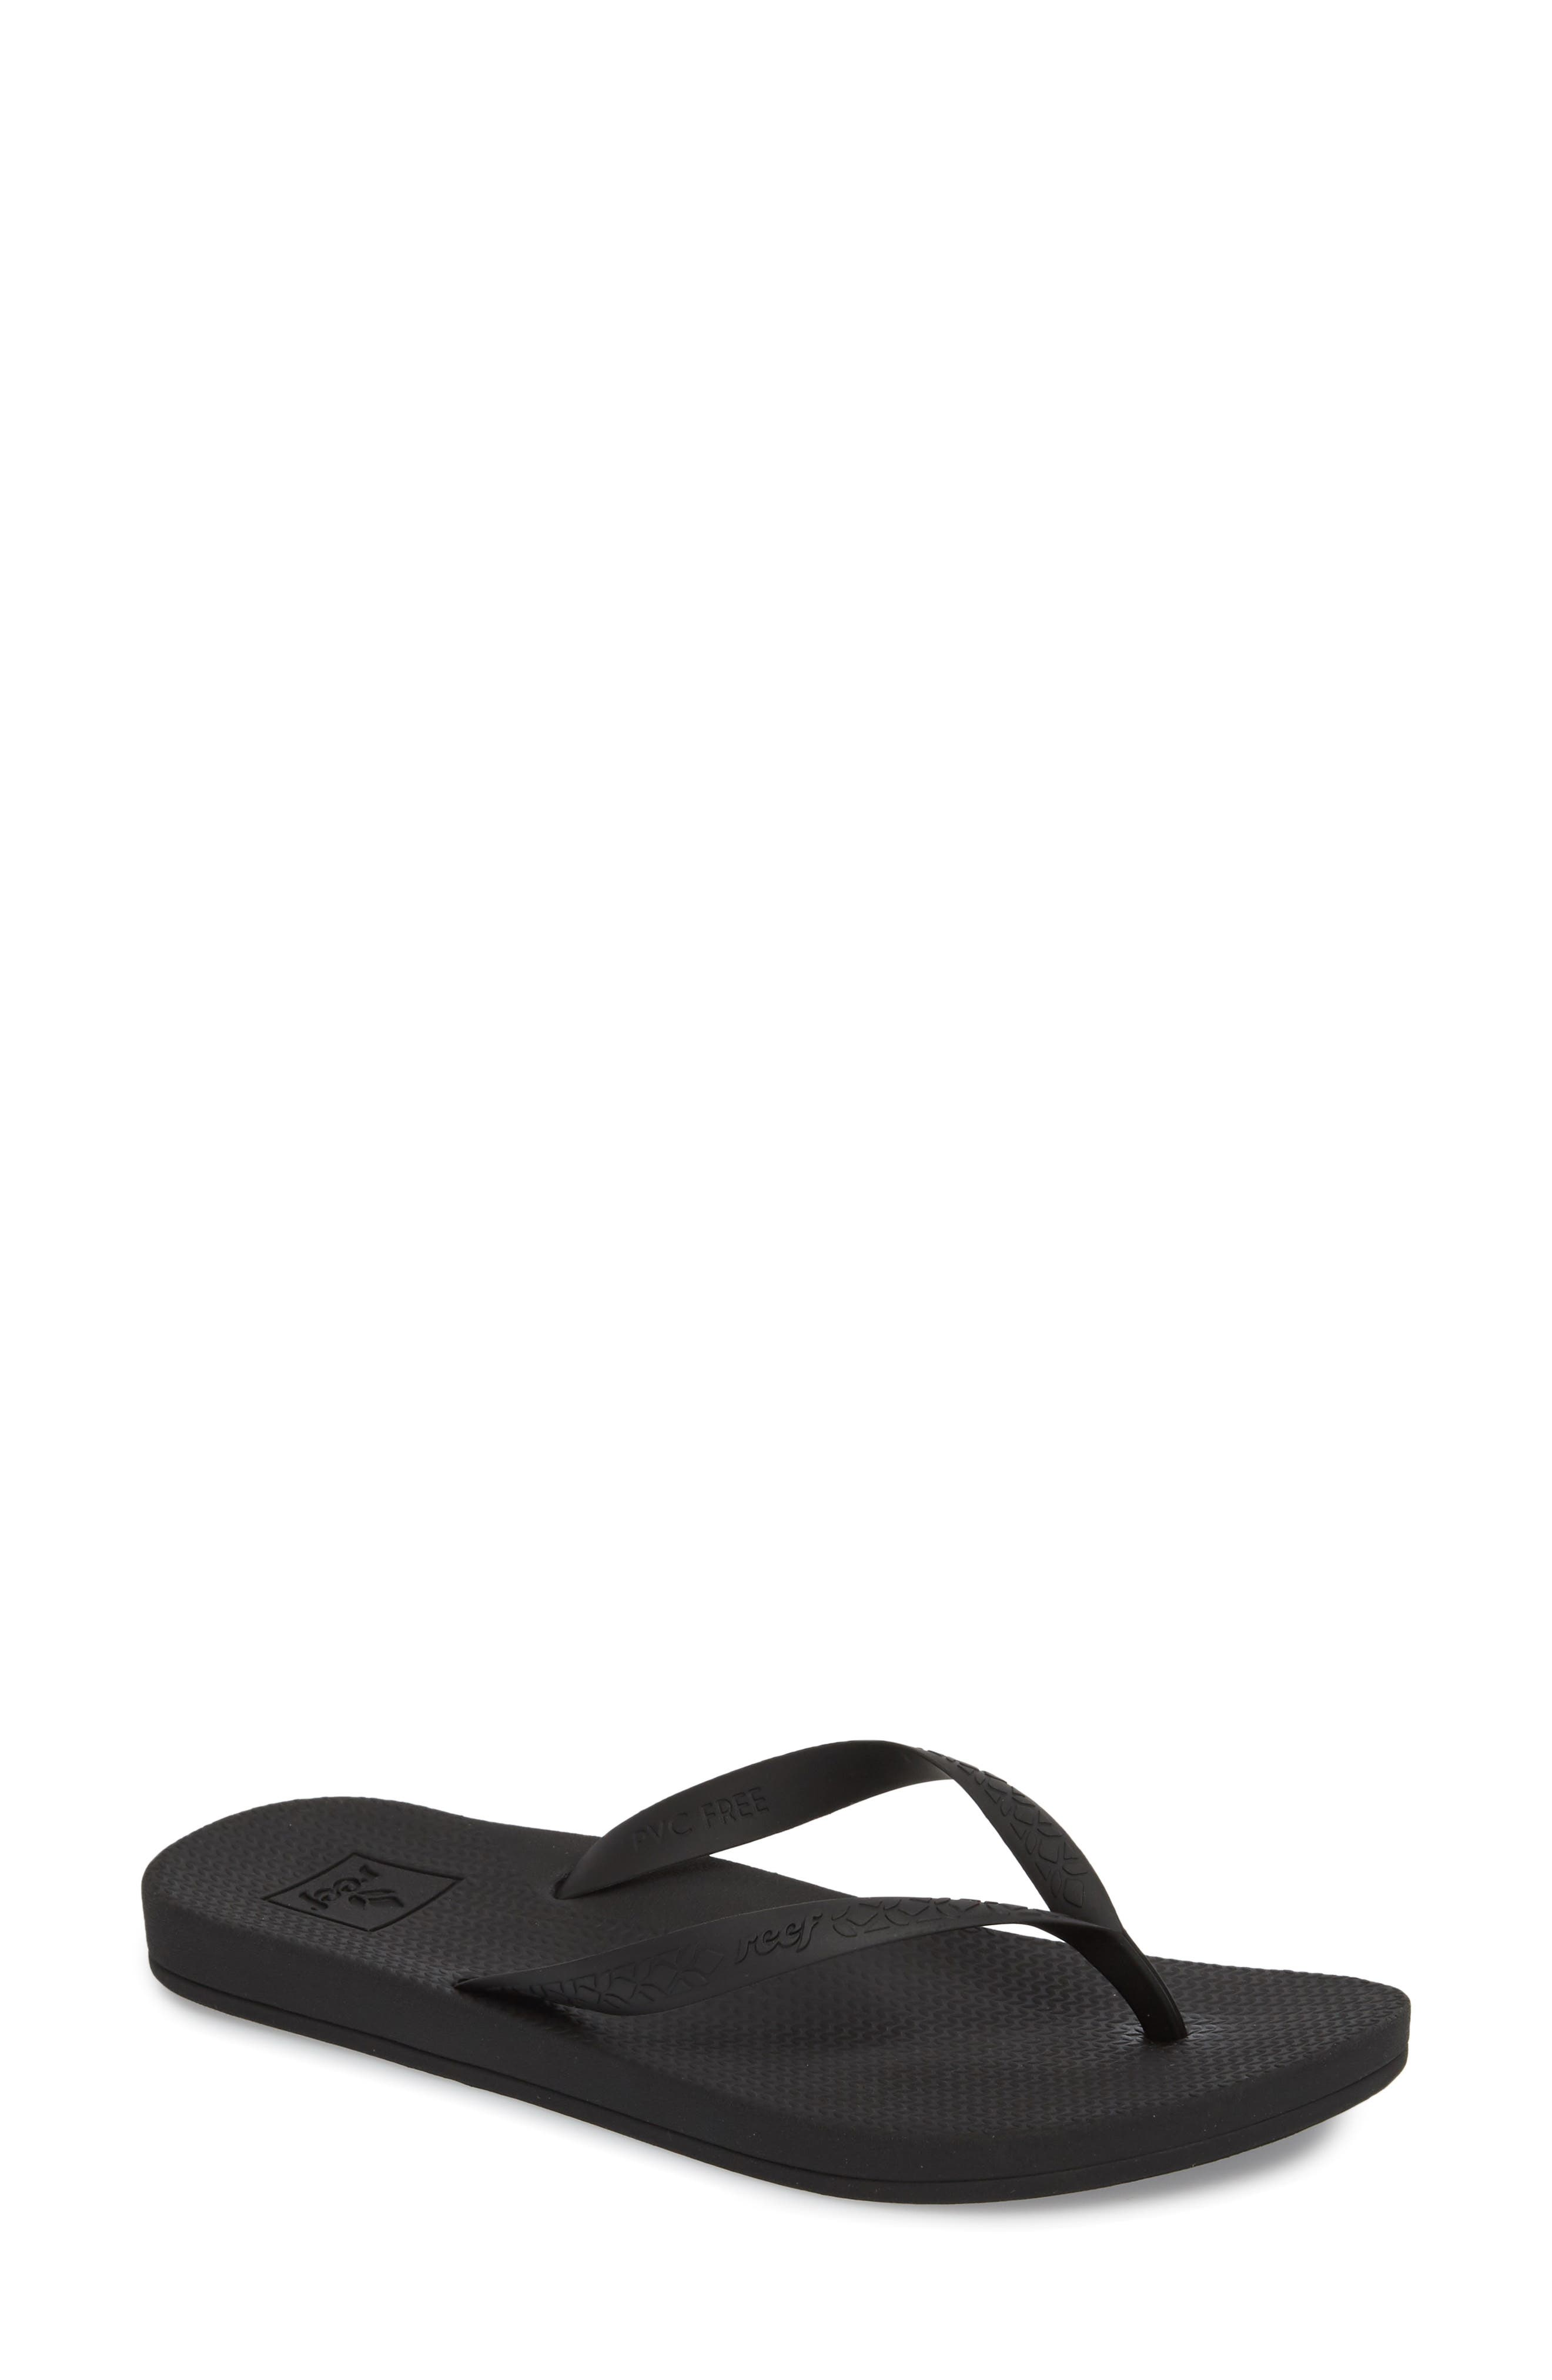 Escape Lux Flip Flop,                             Main thumbnail 1, color,                             BLACK